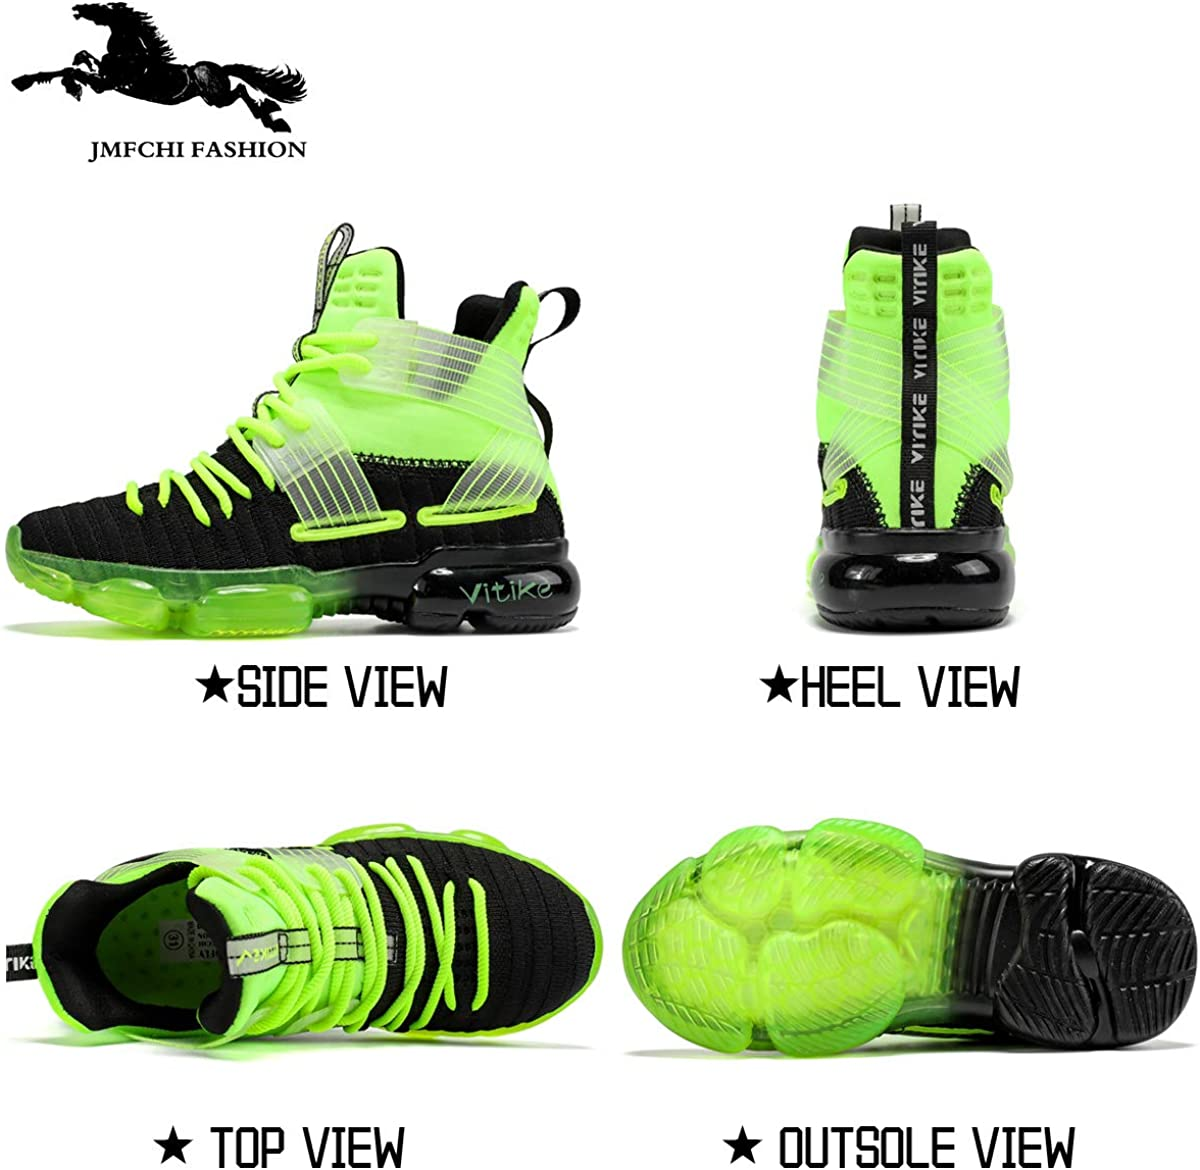 JMFCHI FASHION Boys Basketball Shoes Kids High Top Sports Shoes Girls Outdoor Sneakers Non-Slip Boys Shoes for Little Kid Big Kid